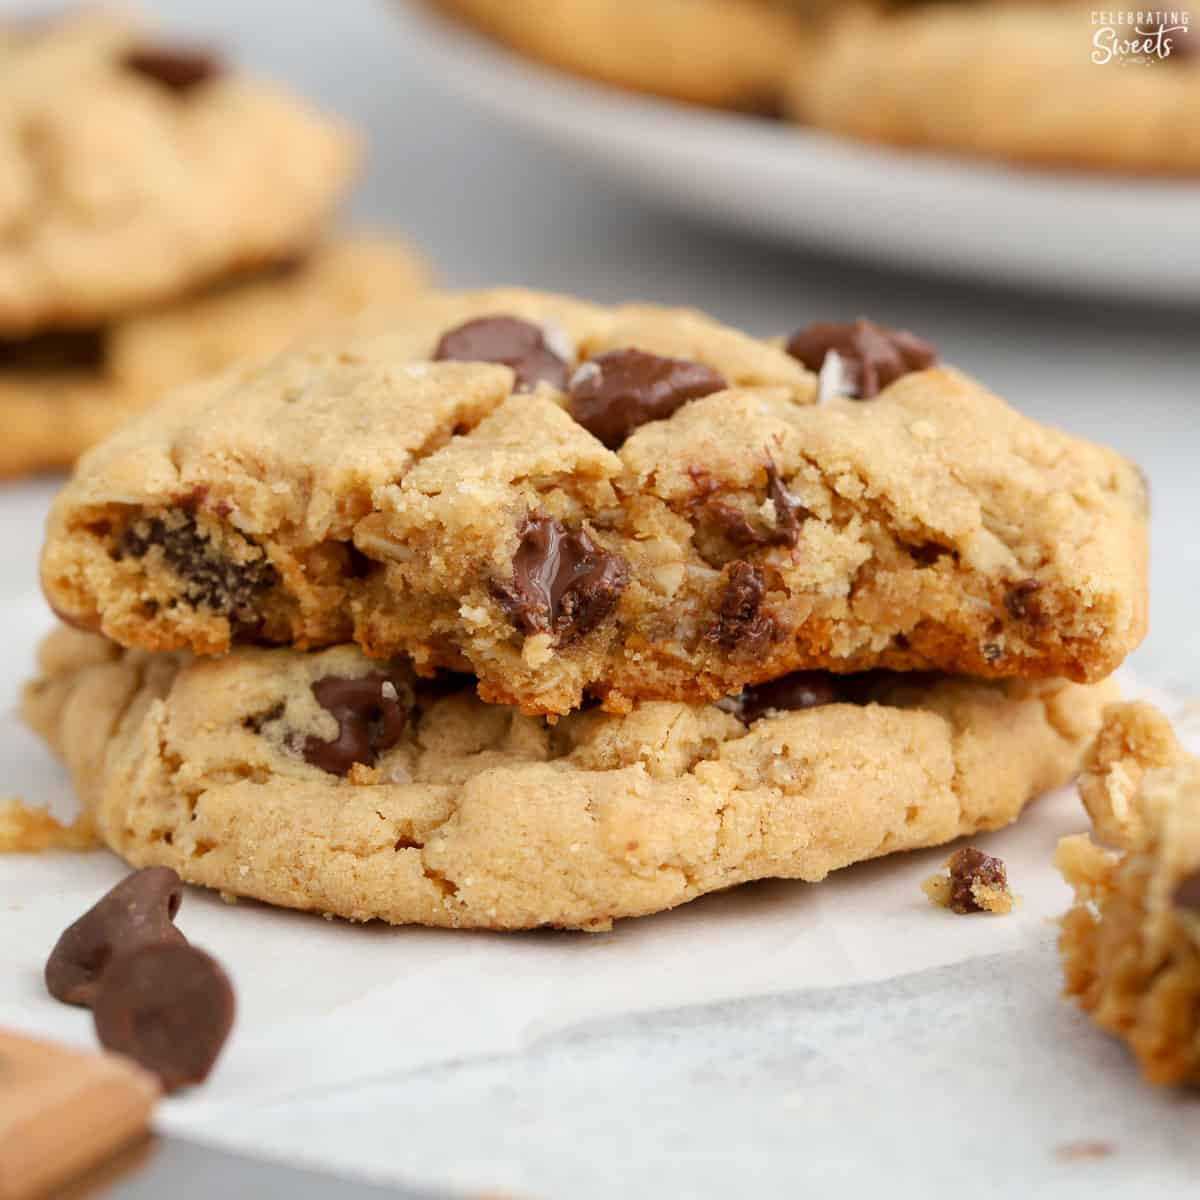 Peanut Butter Oatmeal Cookies Celebrating Sweets